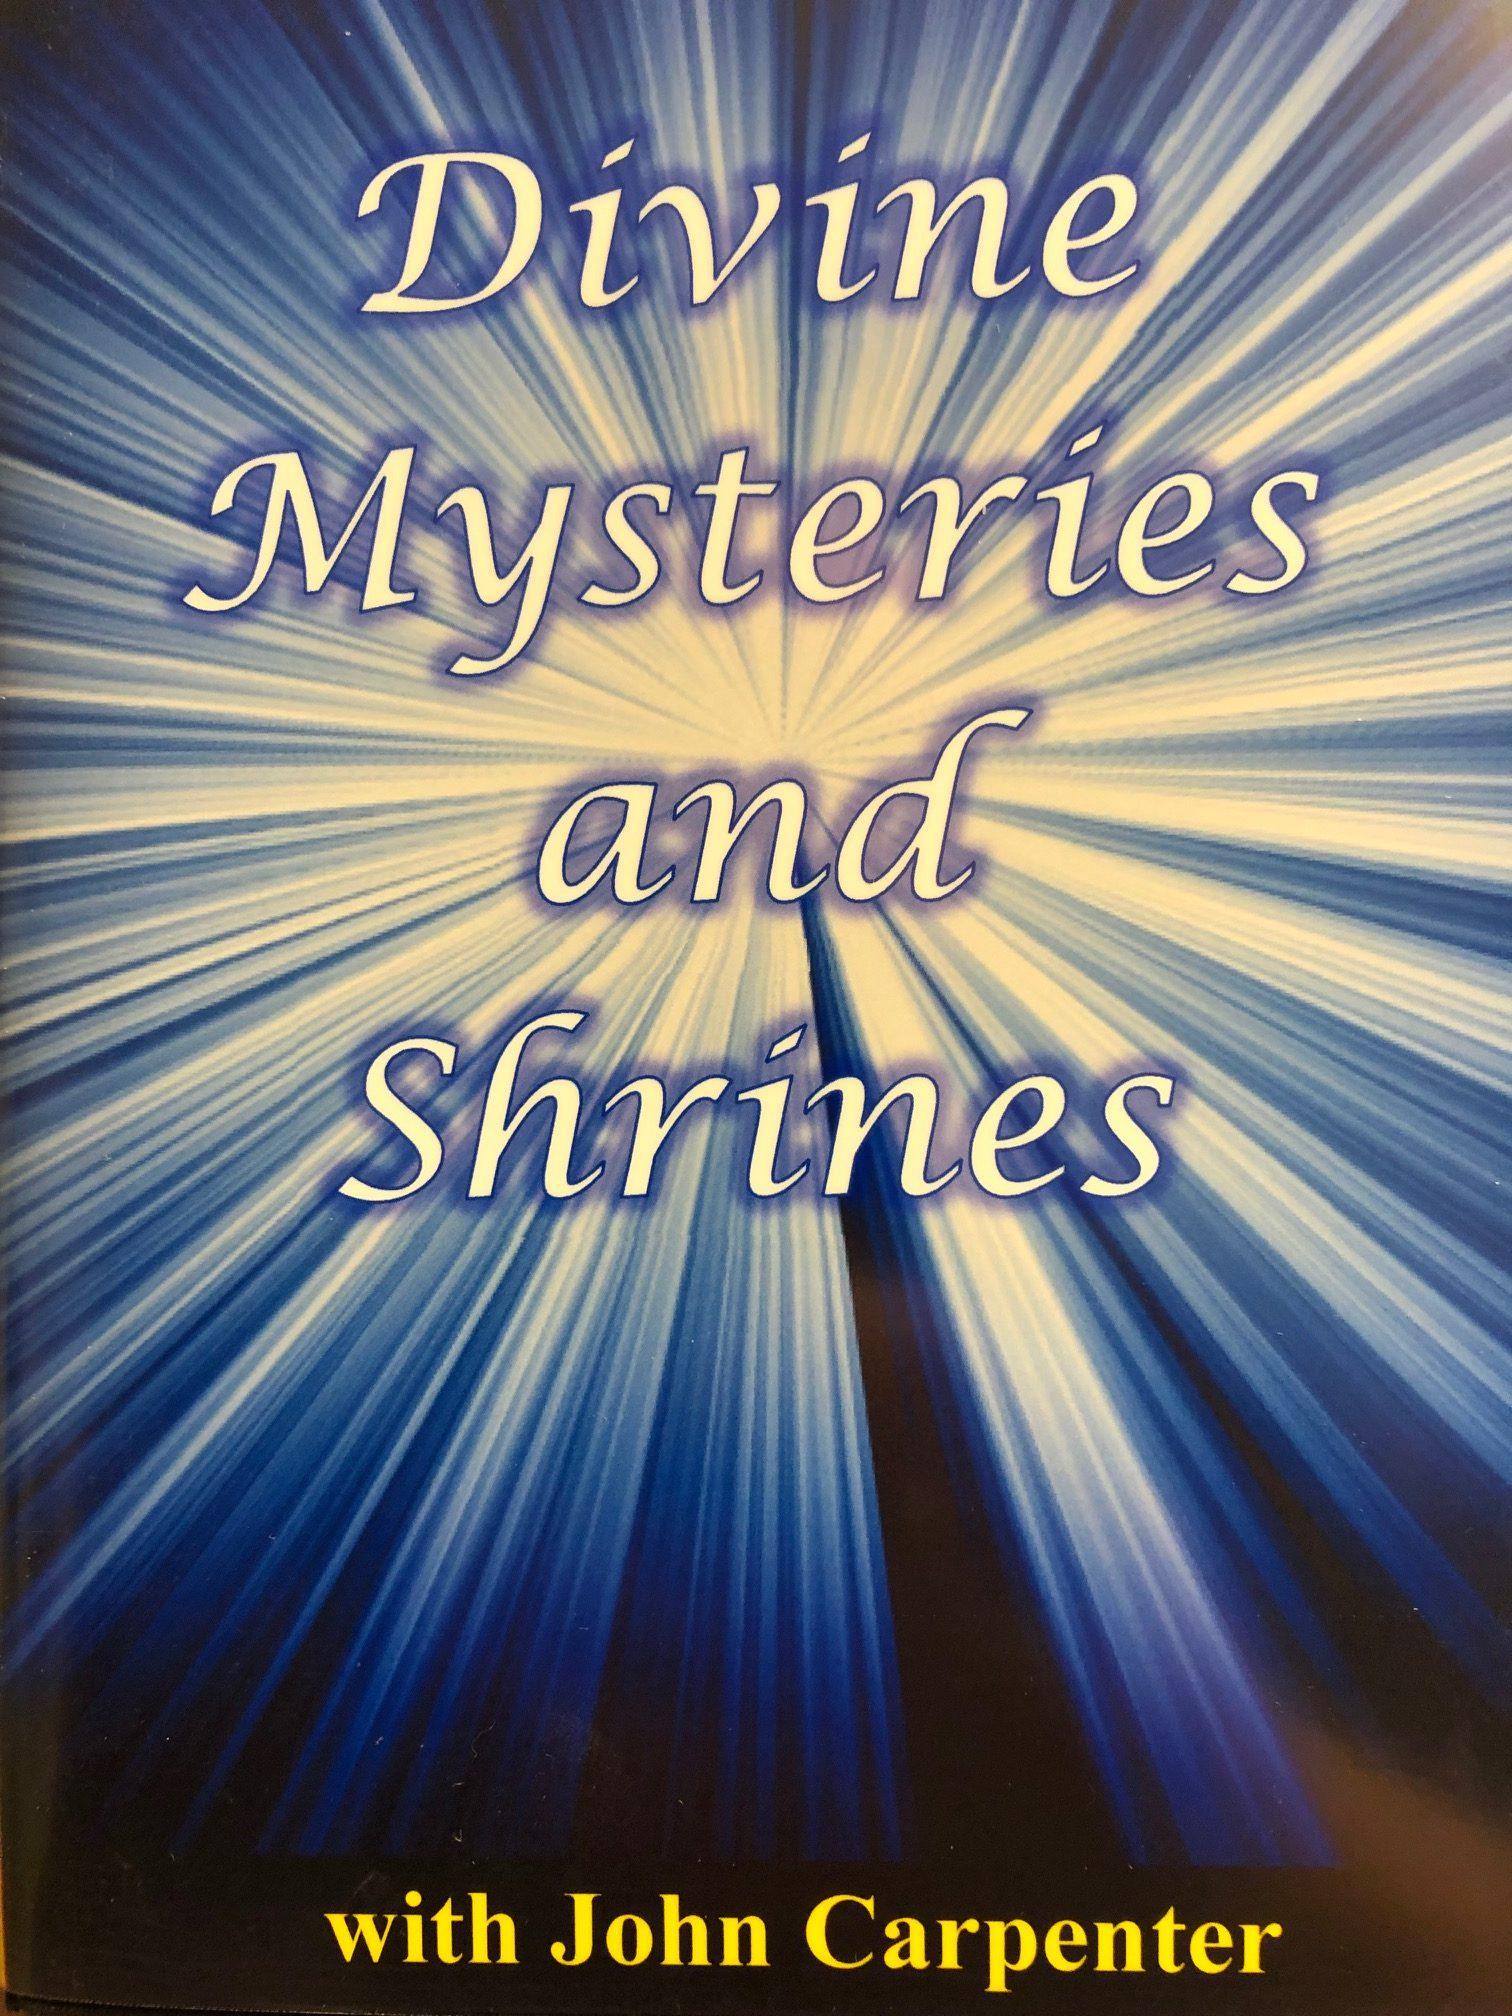 Divine Mysteries DVD Front Cover